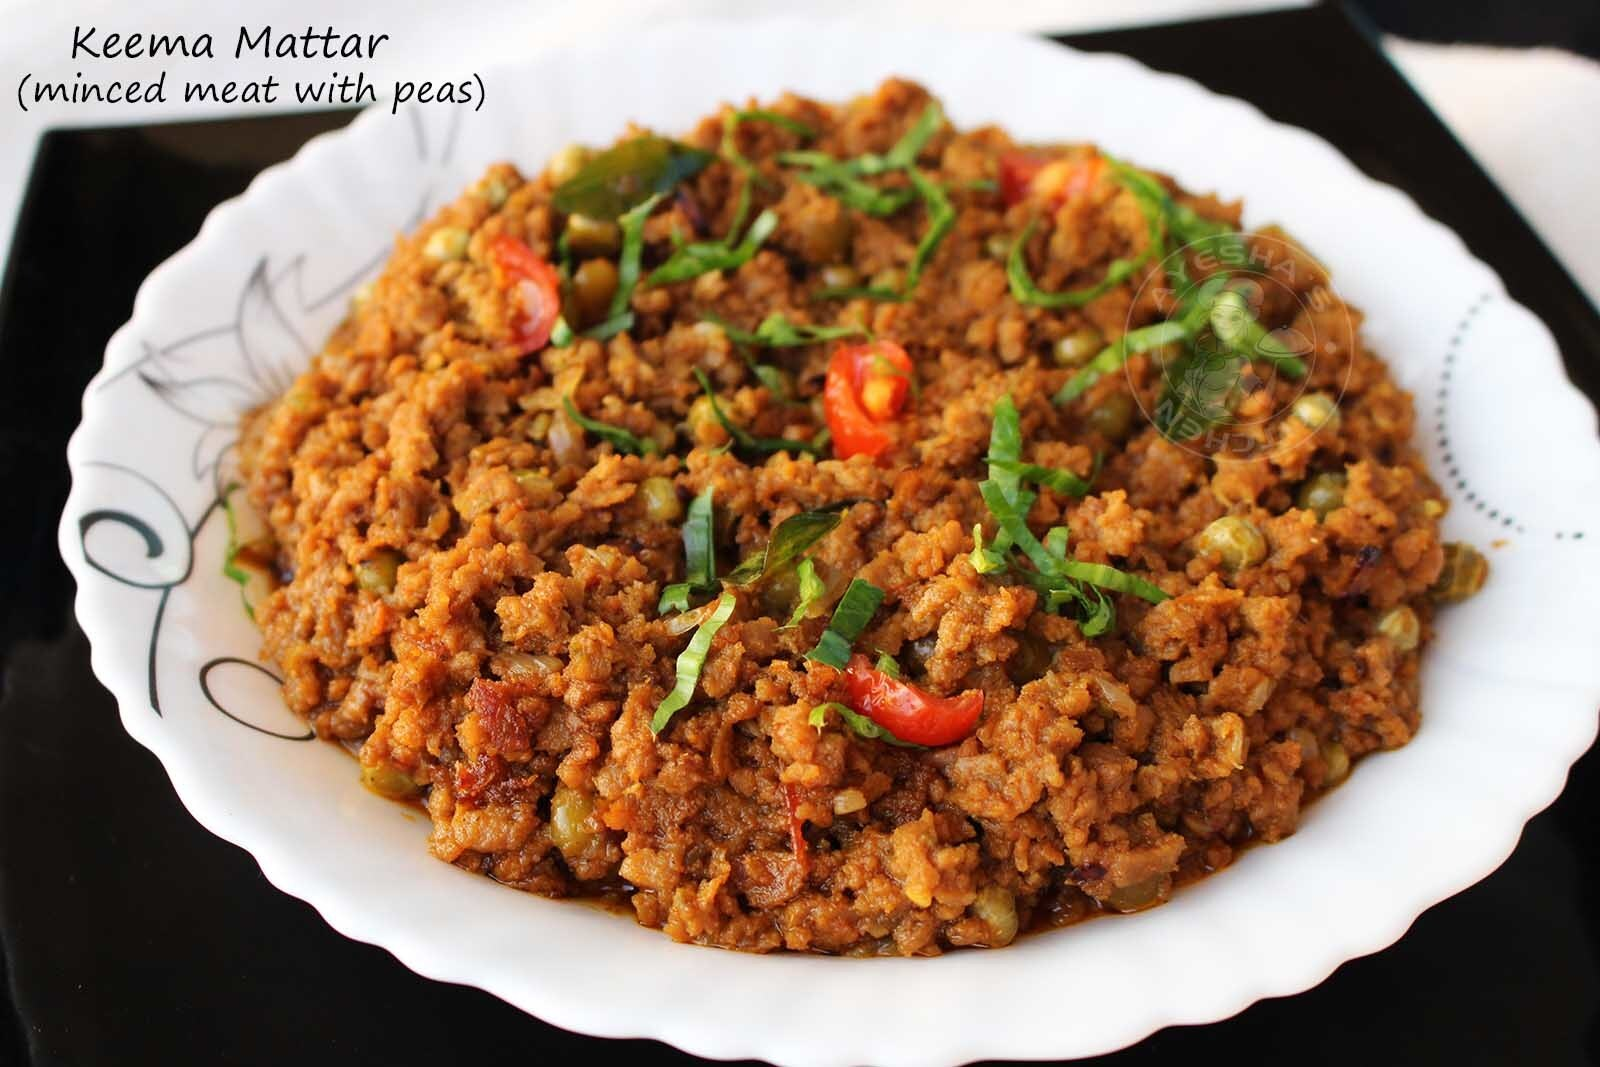 MUTTON KEEMA RECIPE - MINCED MEAT RECIPES